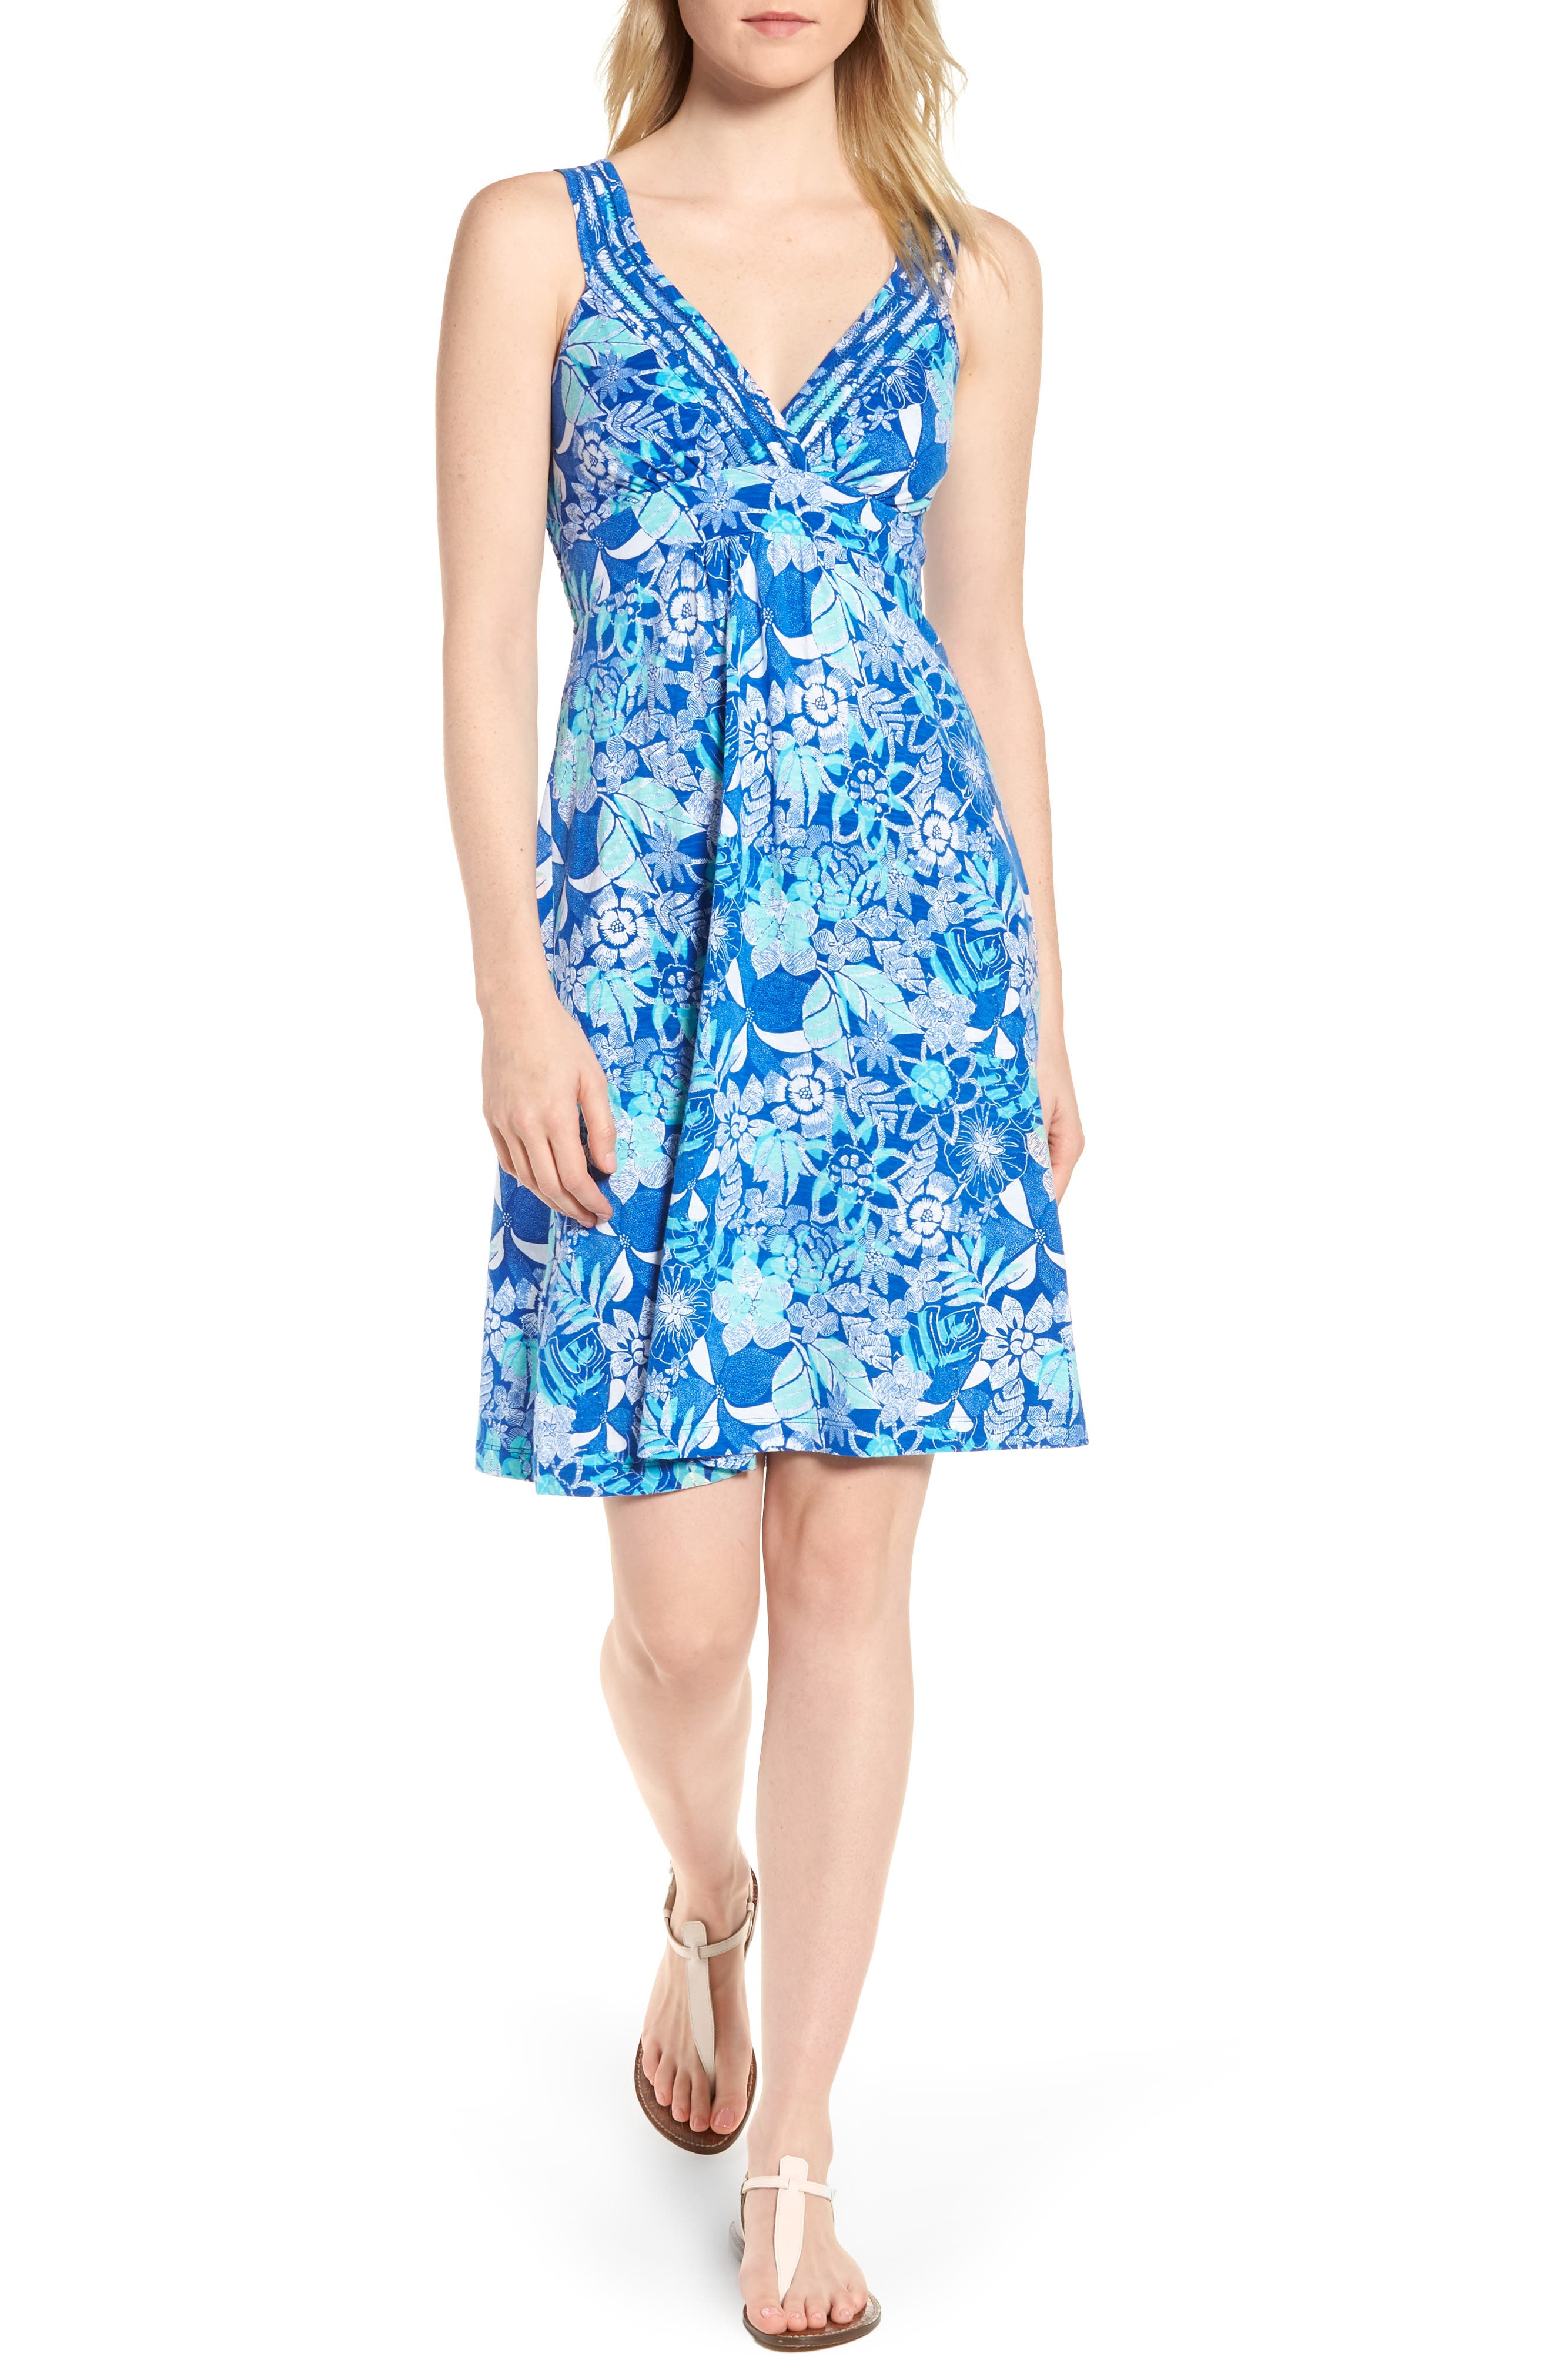 Boardwalk Blooms A-Line Dress,                             Main thumbnail 1, color,                             COBALT